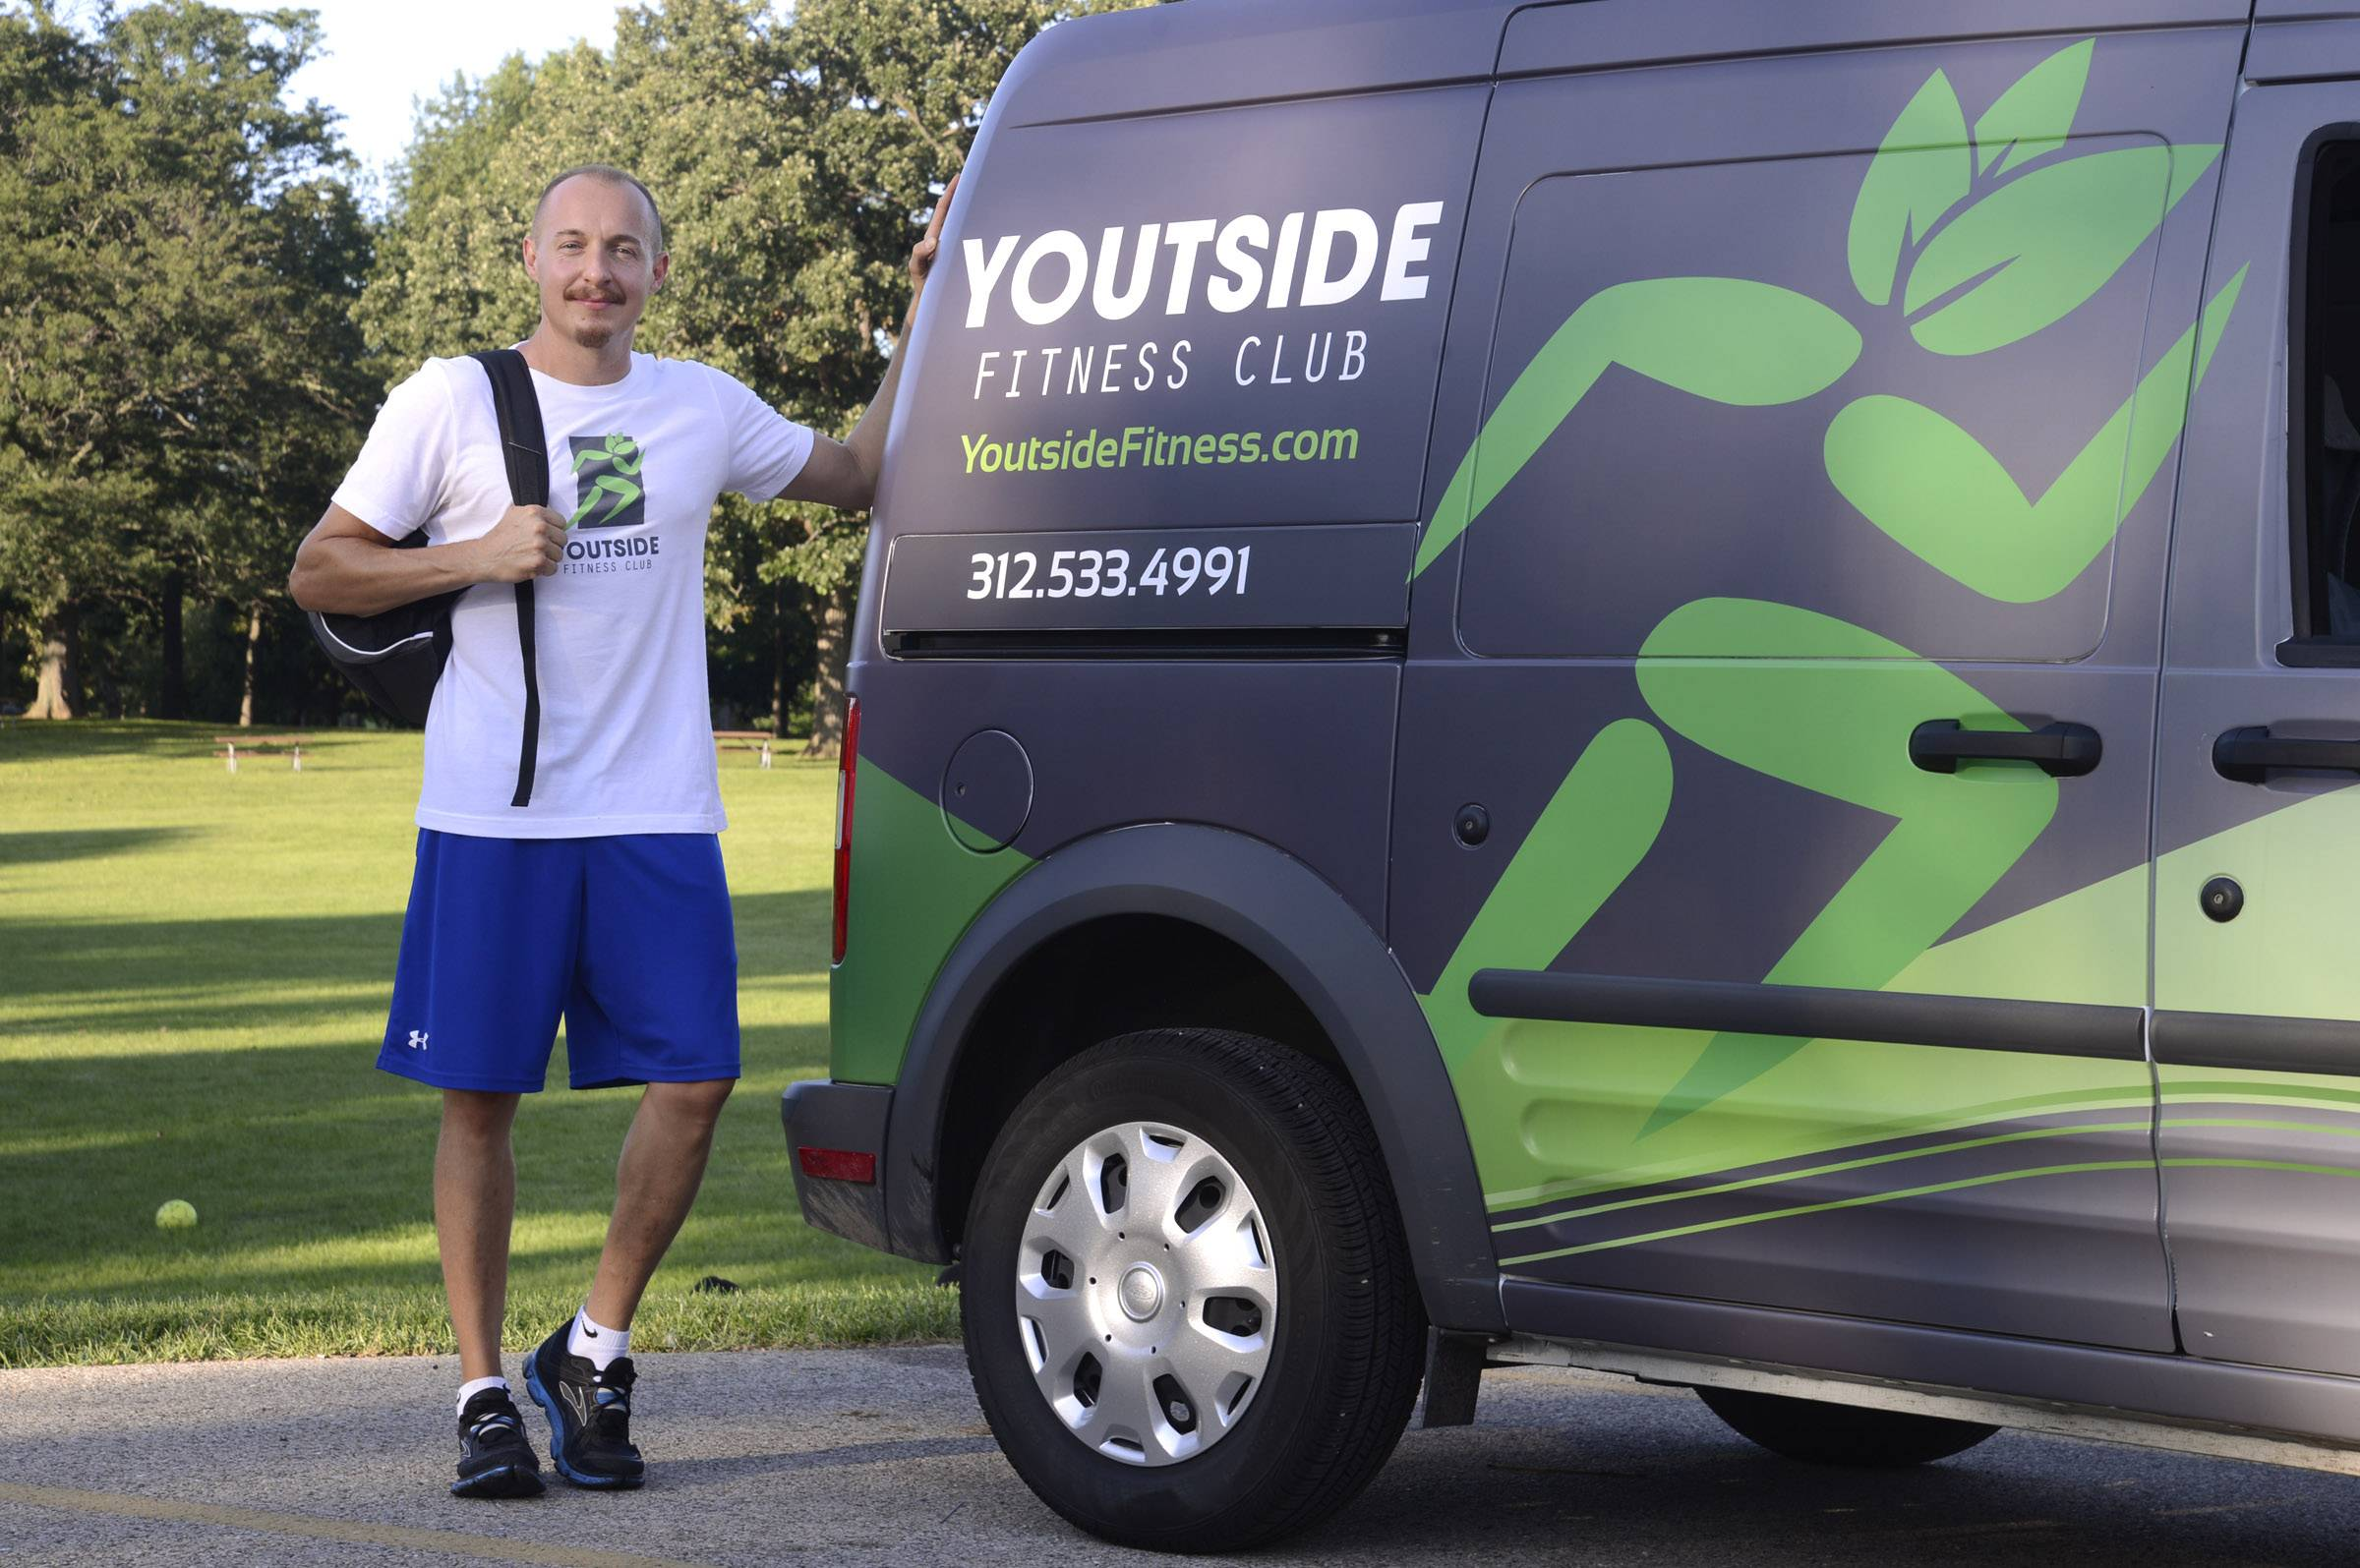 Youtside Fitness Club debuted with three locations in Chicago in April, followed by its first suburban location at Wing Park in Elgin in mid-August. Pictured is trainer Gary Nielsen of Carpentersville.